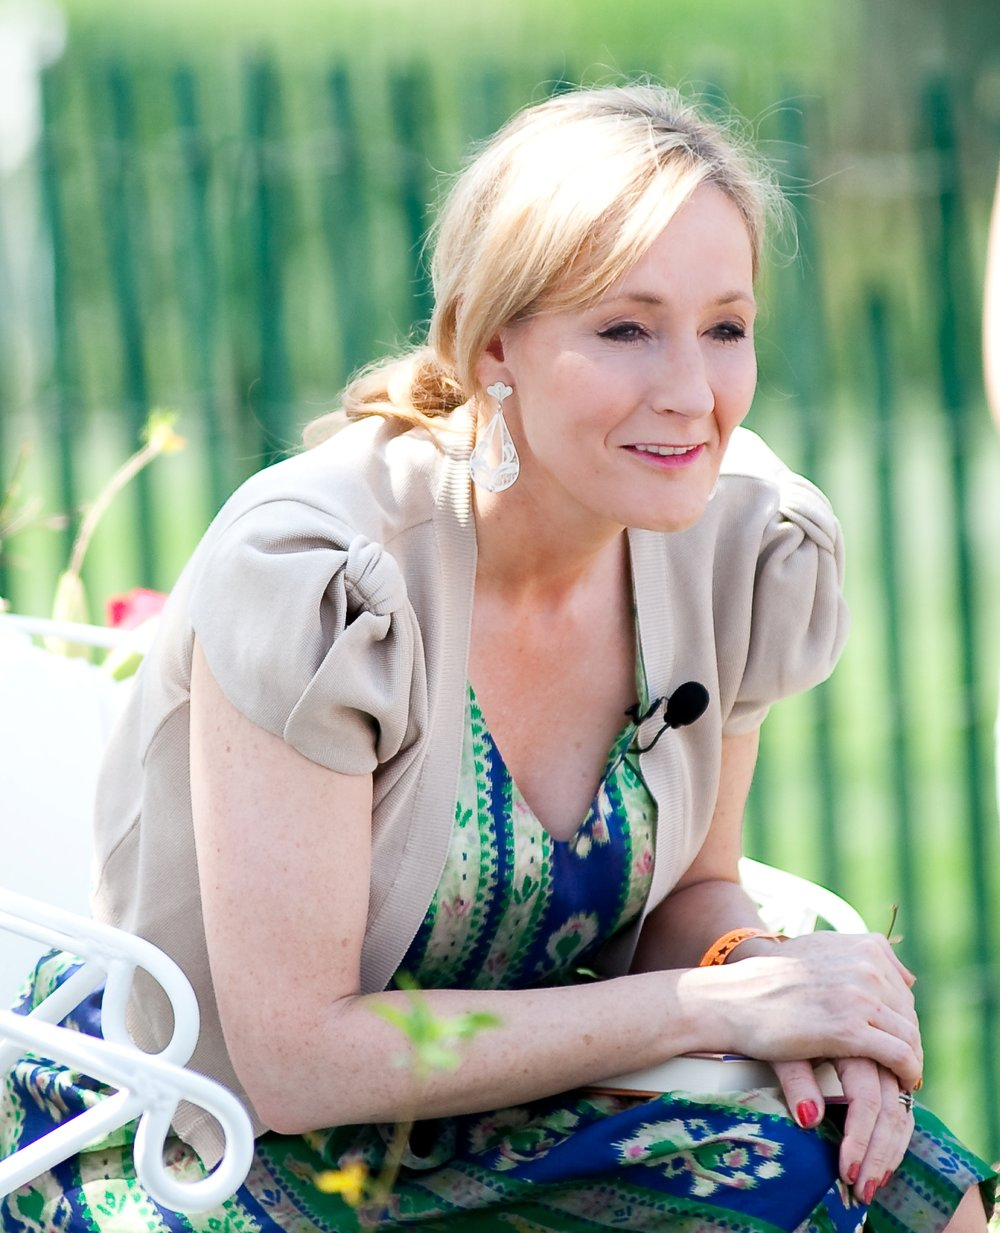 J.K. Rowling reads from  Harry Potter and the Sorcerer's Stone  during the Easter Egg Roll at the White House. Photo by Daniel Ogren.